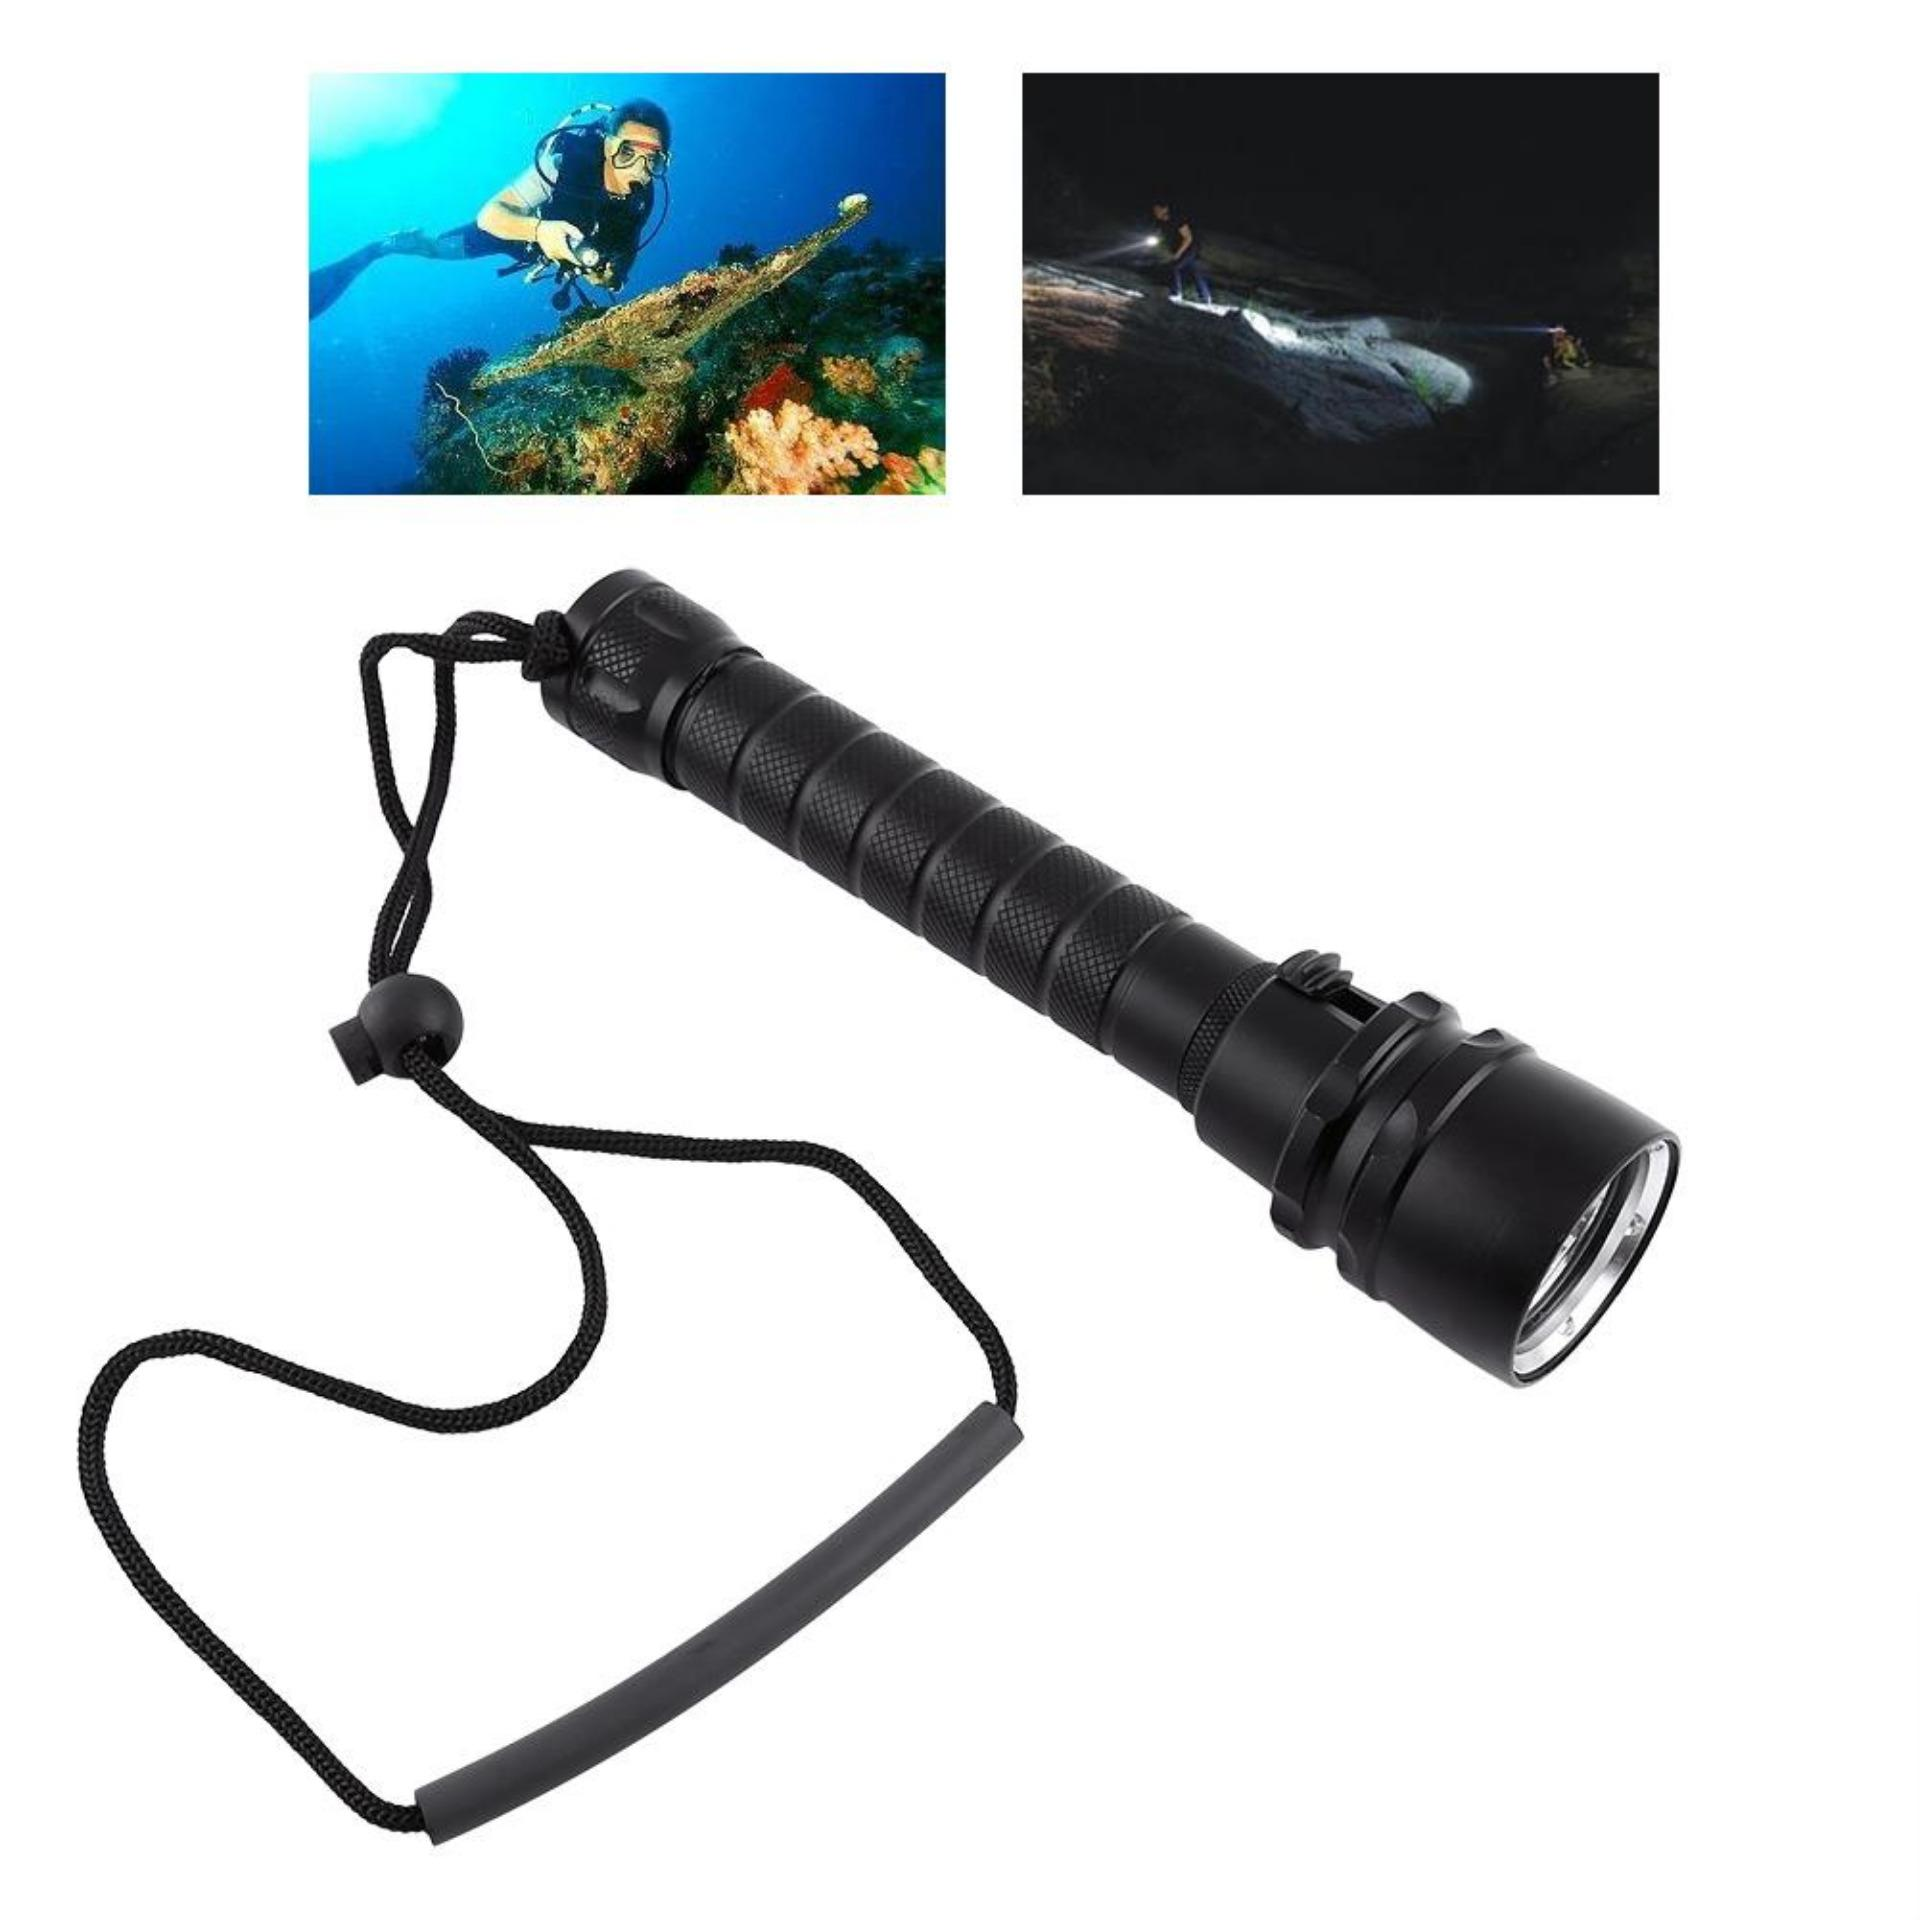 8000LM Underwater 100m 3 x T6 Diving Flashlight Dive Torch With Hand Strap  - intl